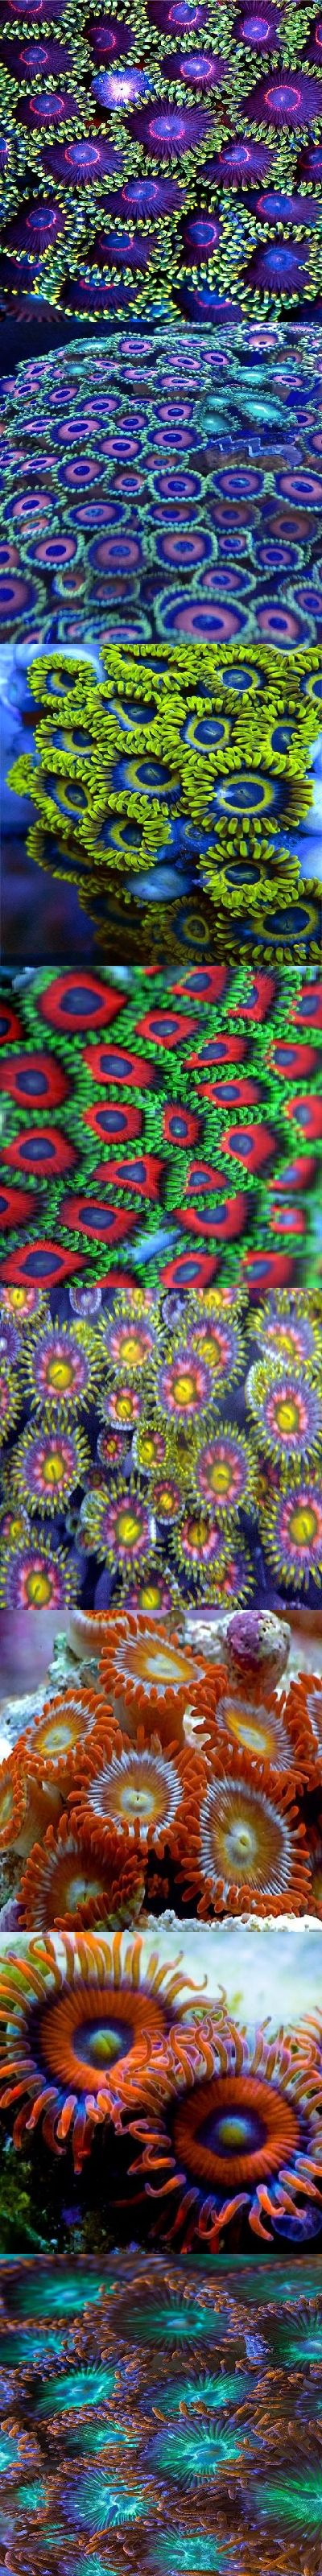 Zoanthids are the most beautiful among all the soft corals. But beware, they are…